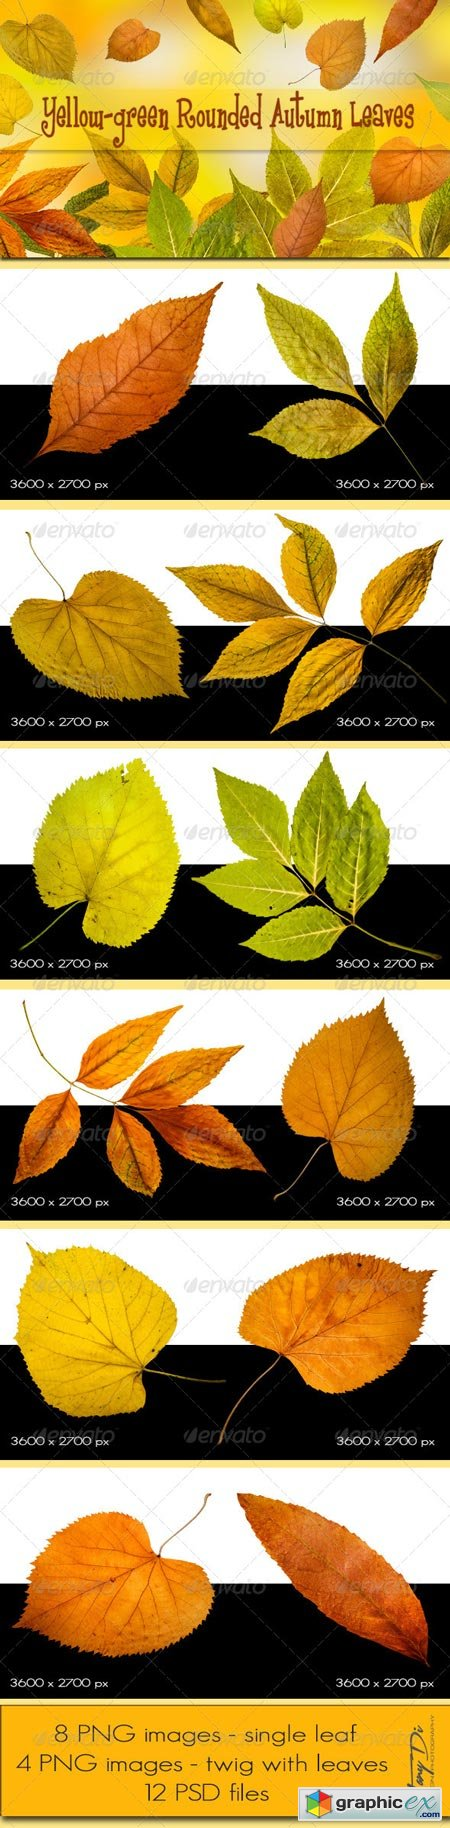 Yellow-green Rounded Autumn Leaves 5776176